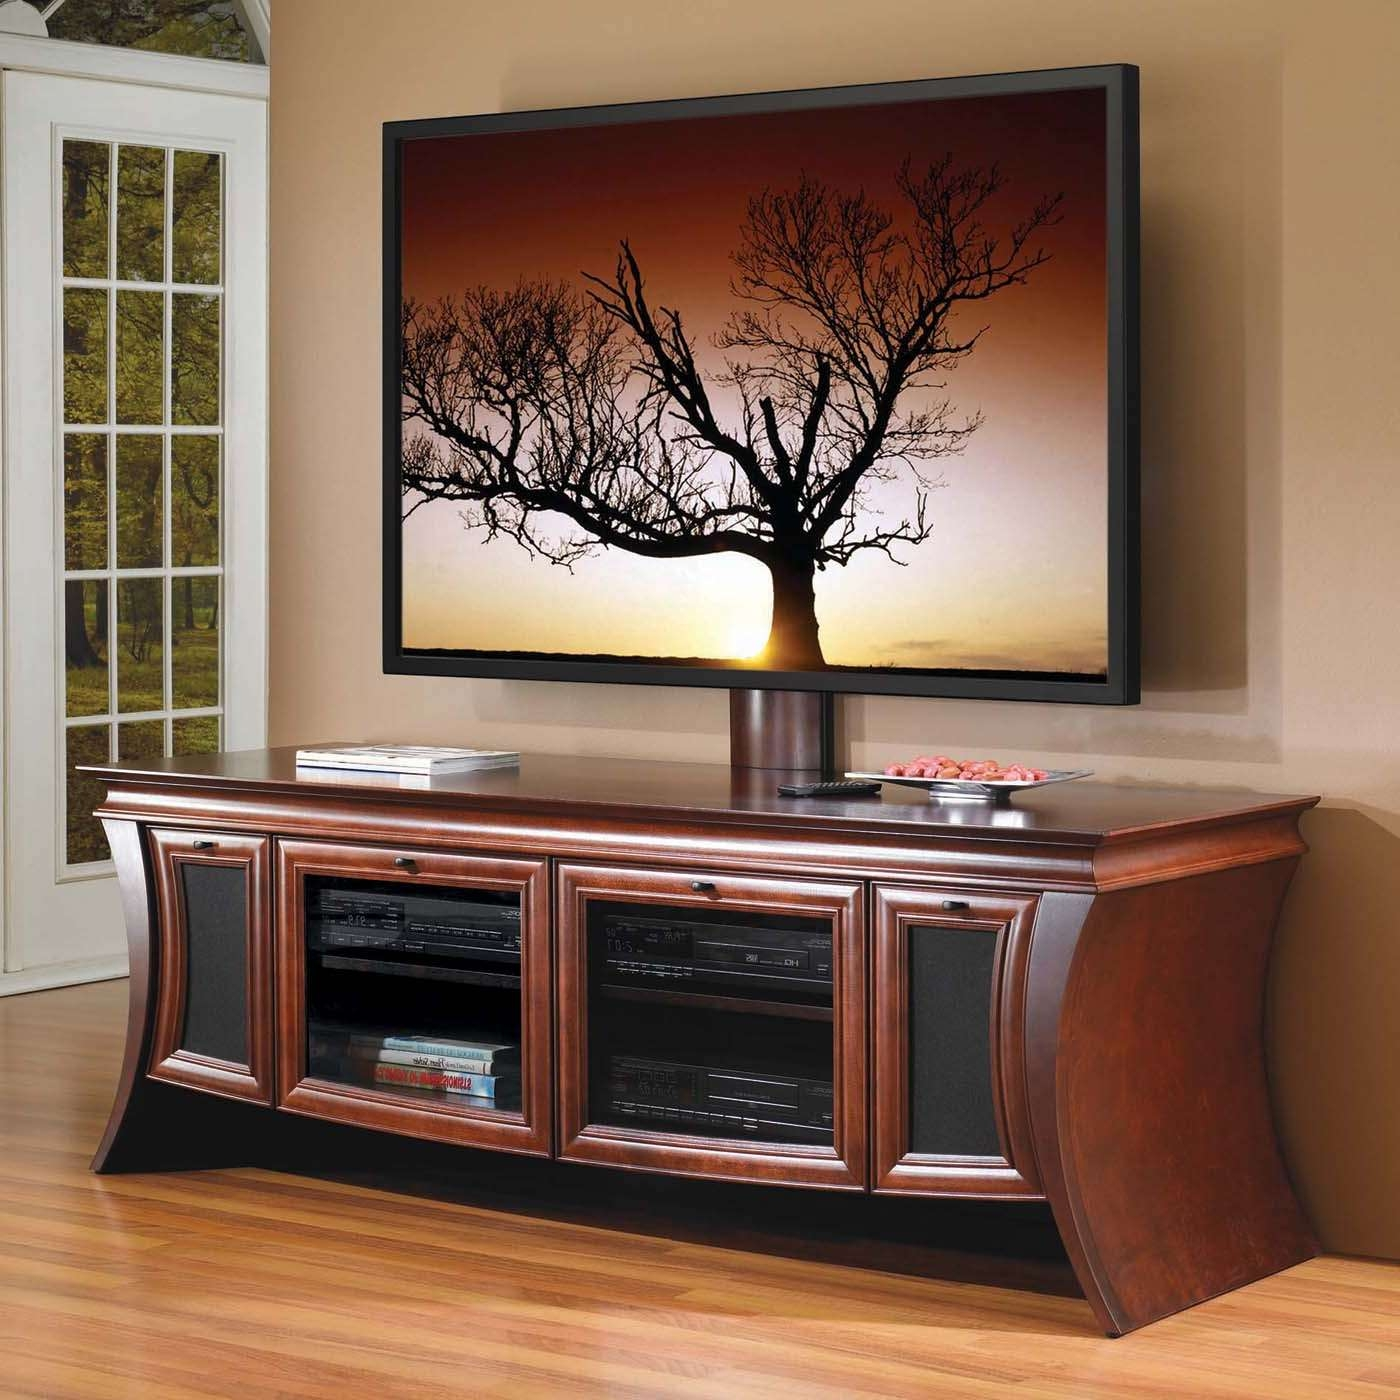 Furnitures Media Stands For Flat Screen Tvs Furniture The Best Pertaining To Glass Corner Tv Stands For Flat Screen Tvs (View 11 of 15)